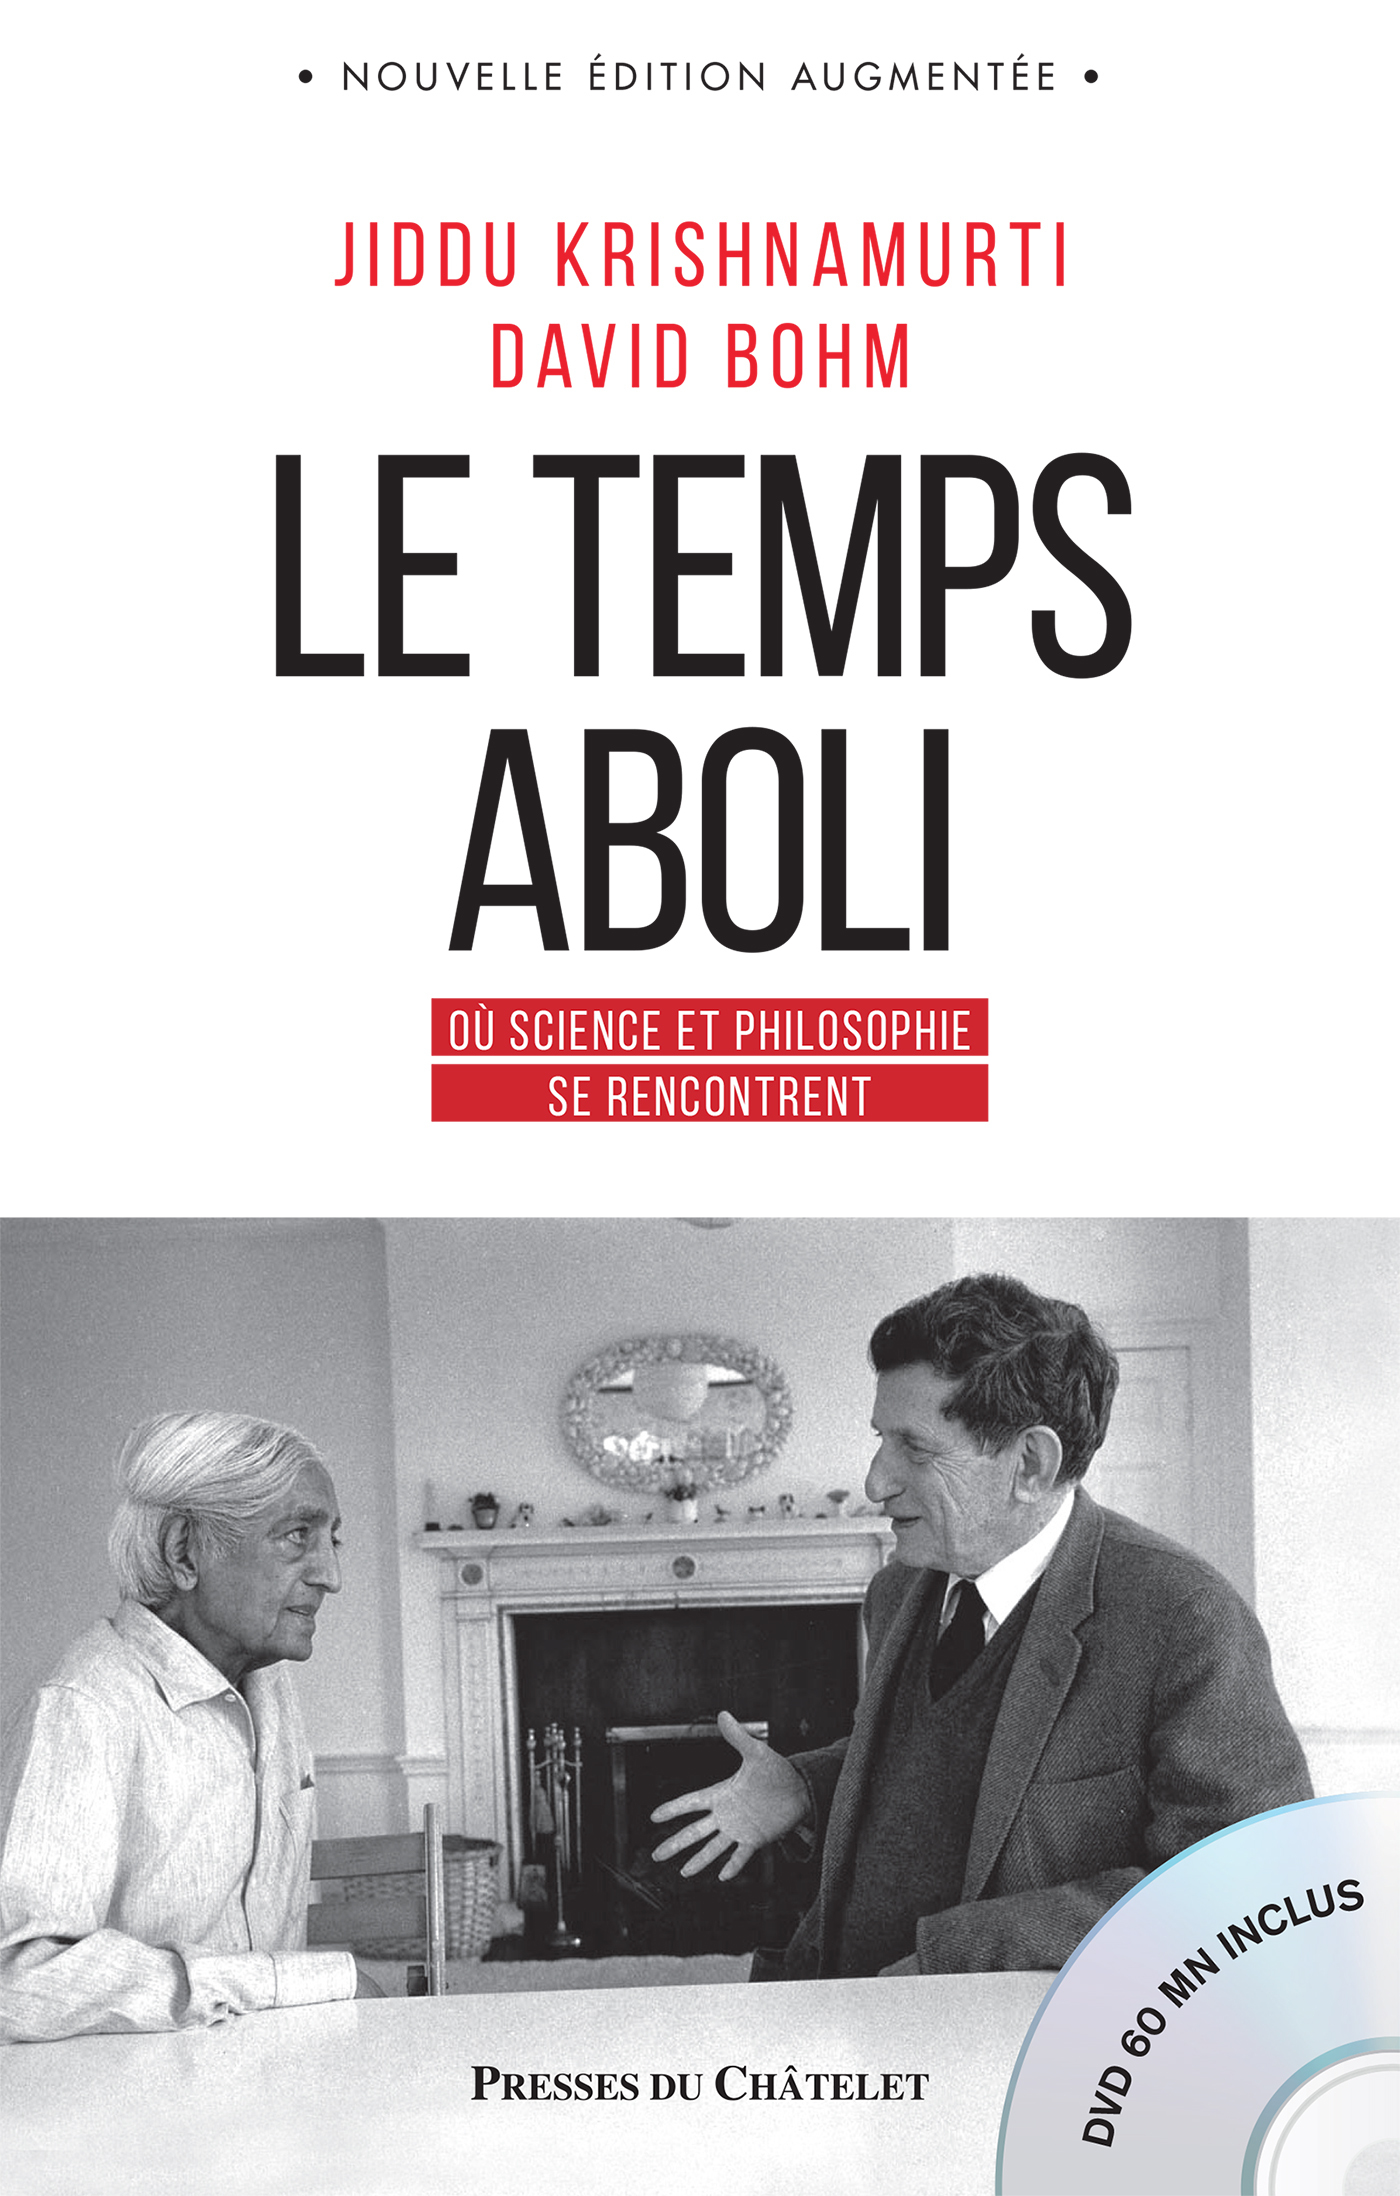 LE TEMPS ABOLI - OU SCIENCE ET PHILOSOPHIE SE RENCONTRENT